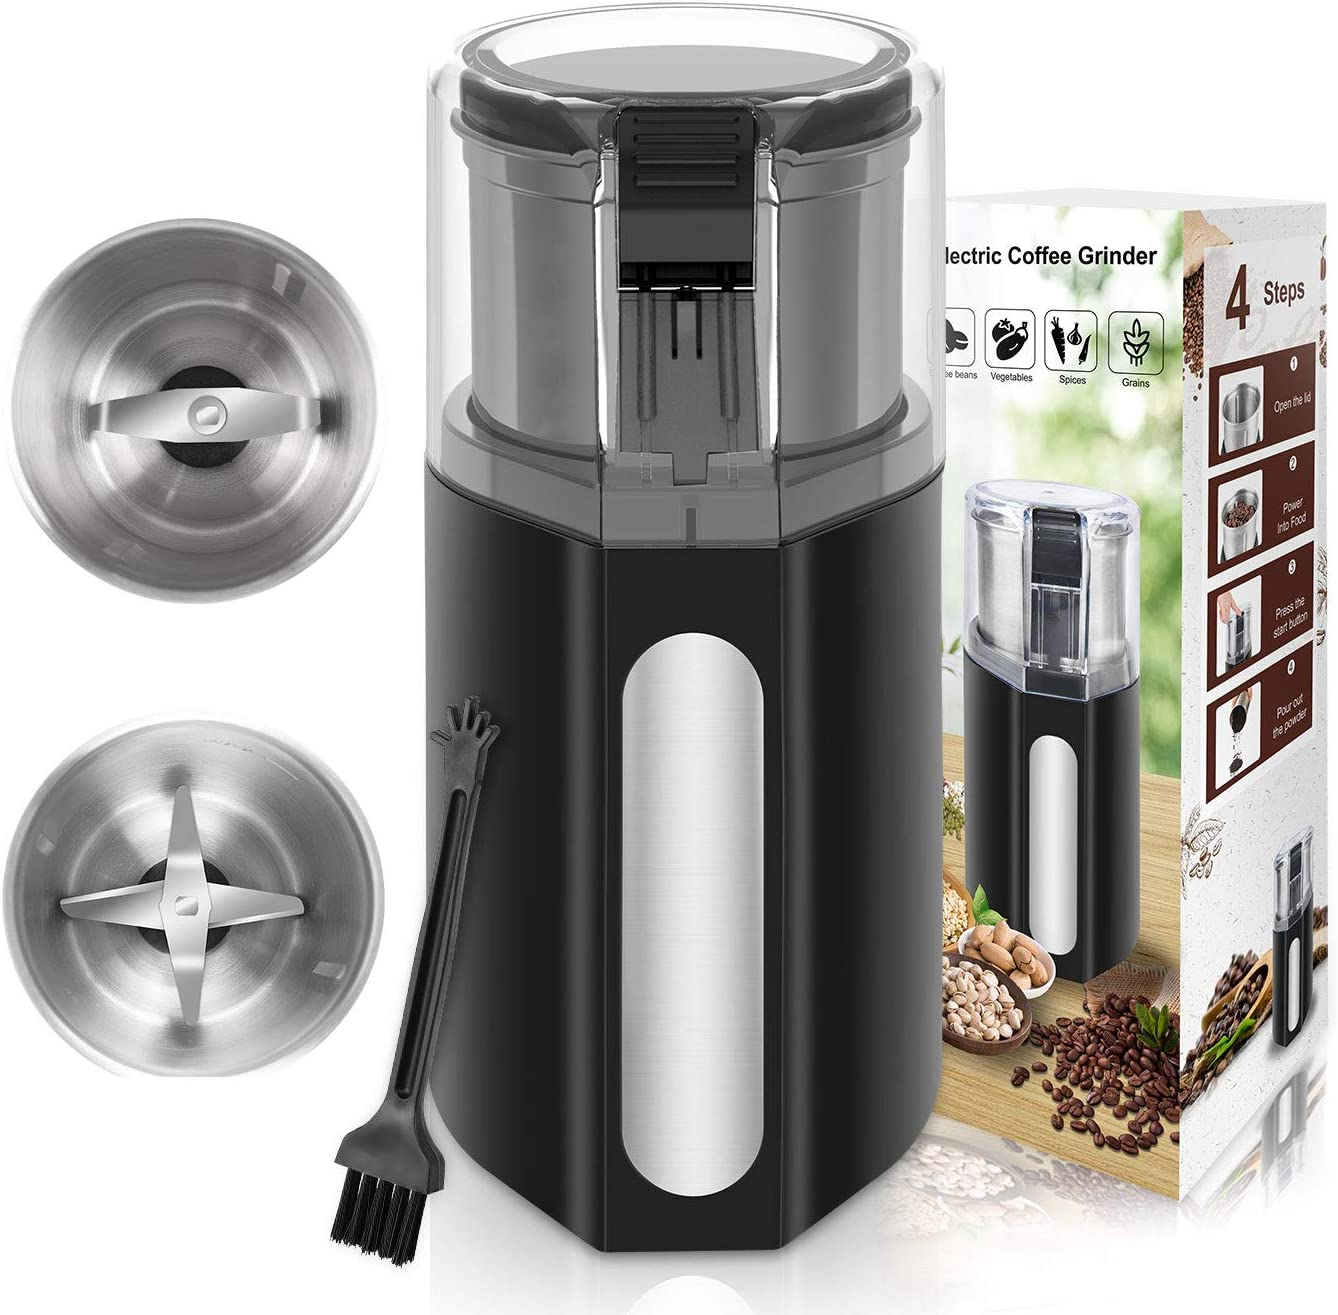 Outopest Coffee Bean Grinder, 200W Spice Grinder Electric Coffee Grinder, Nut Grinder for Spices and Seeds with 2 Removable 316 Stainless Steel Cups, Cleaning Brush, 4 Lines of Secutity Protection